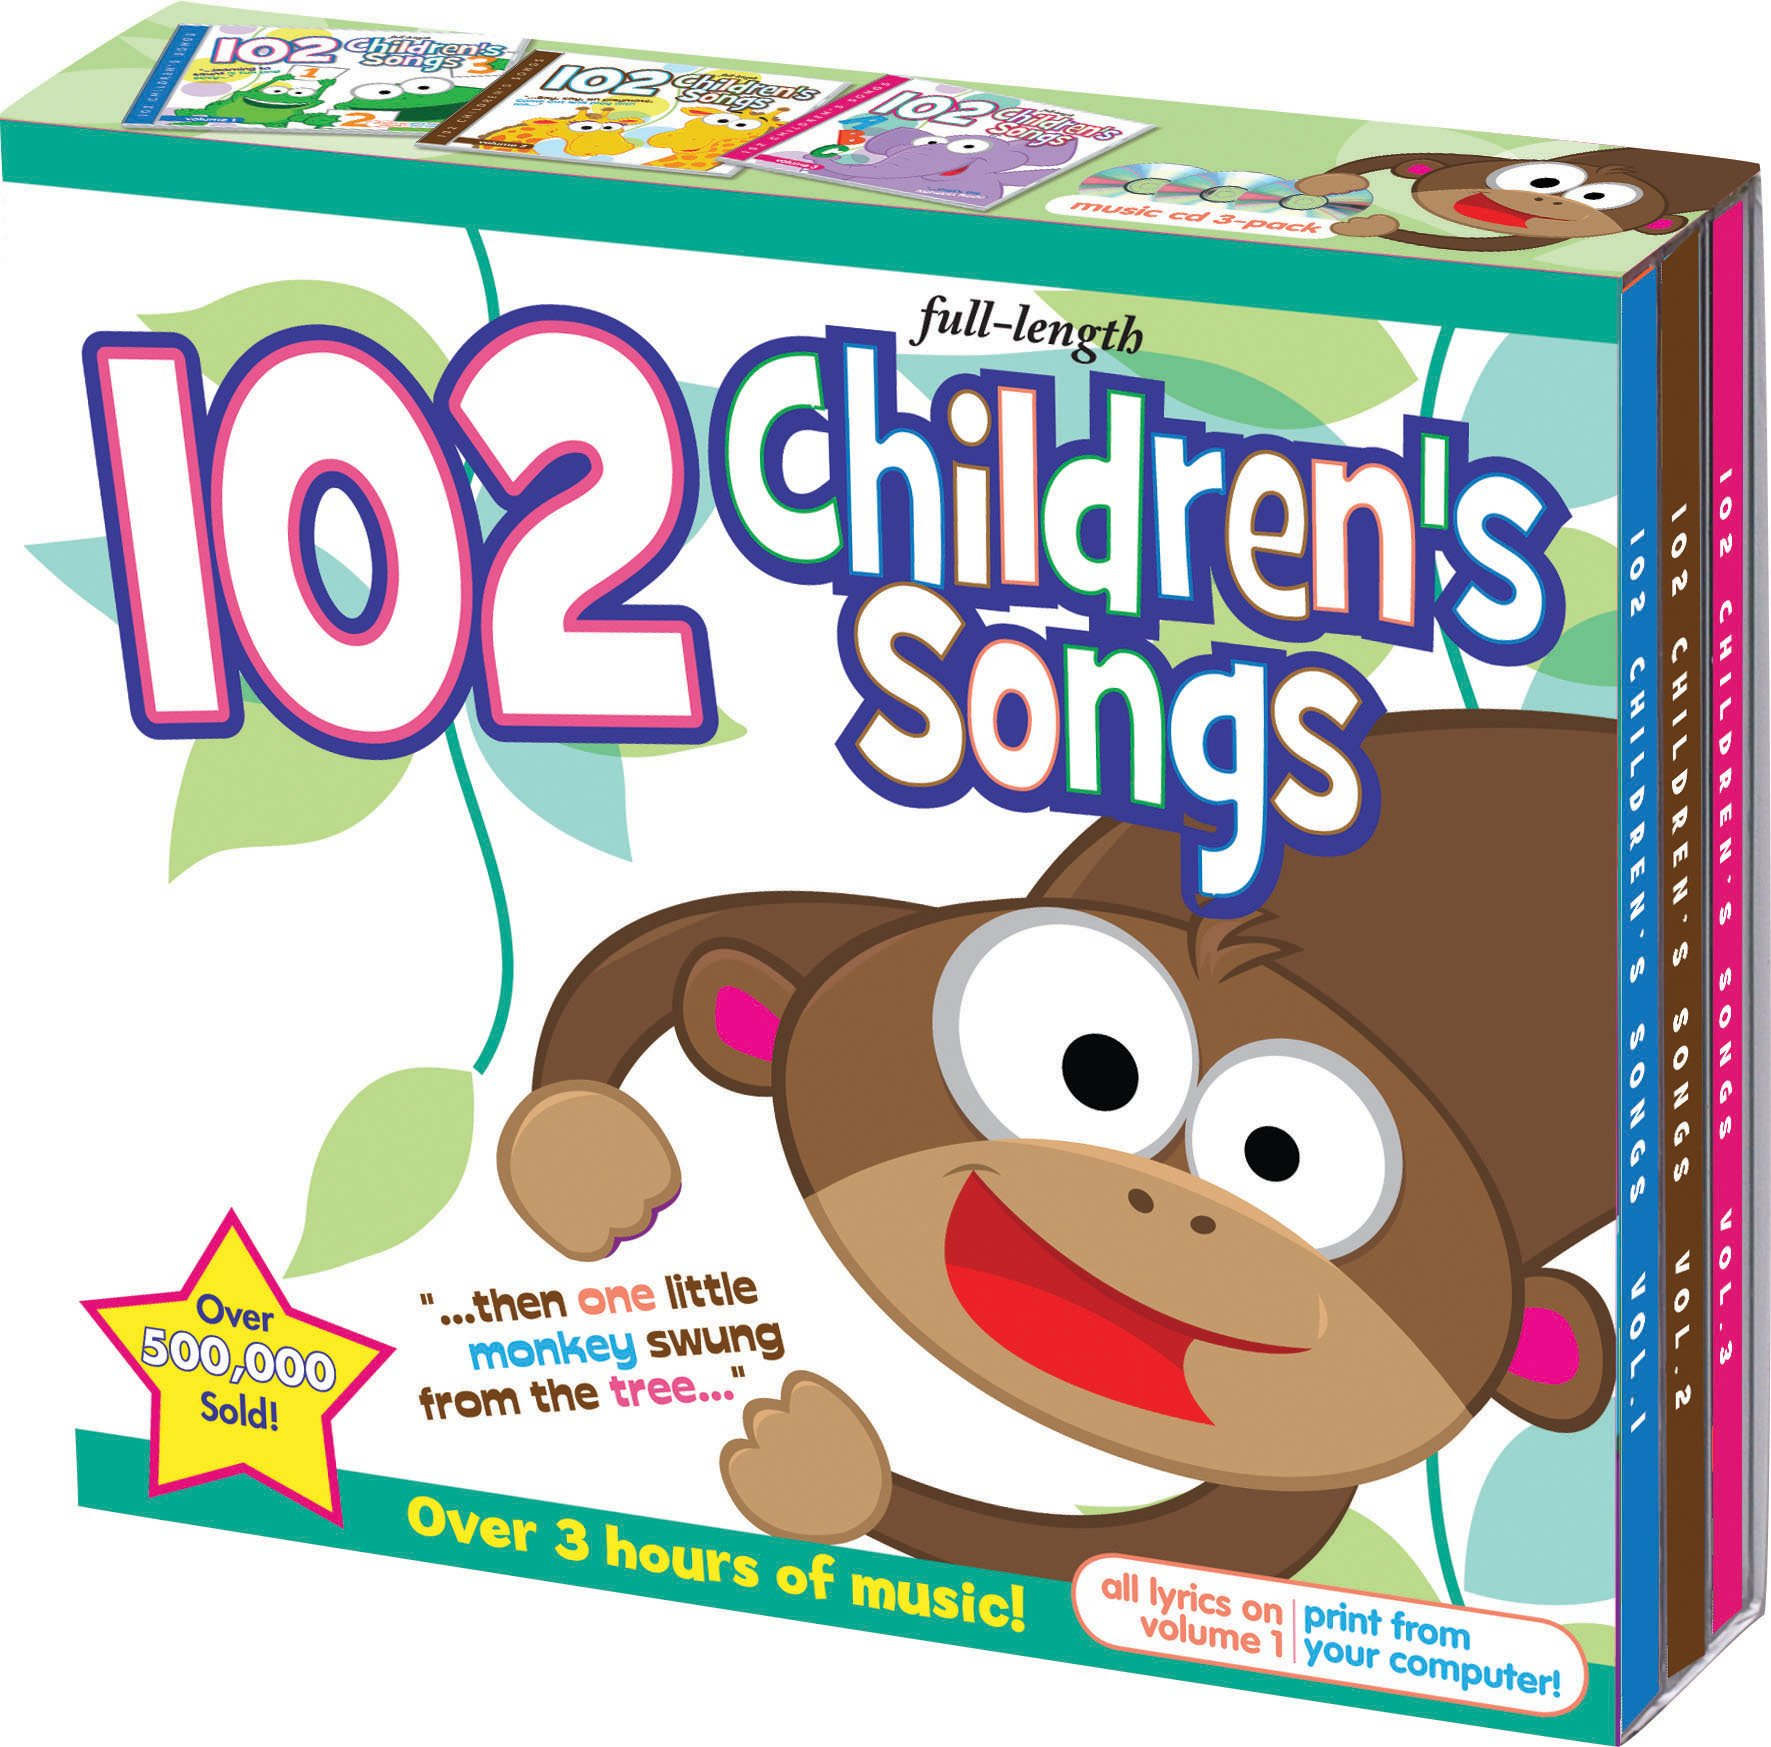 102 Children's Songs by Twin Sisters